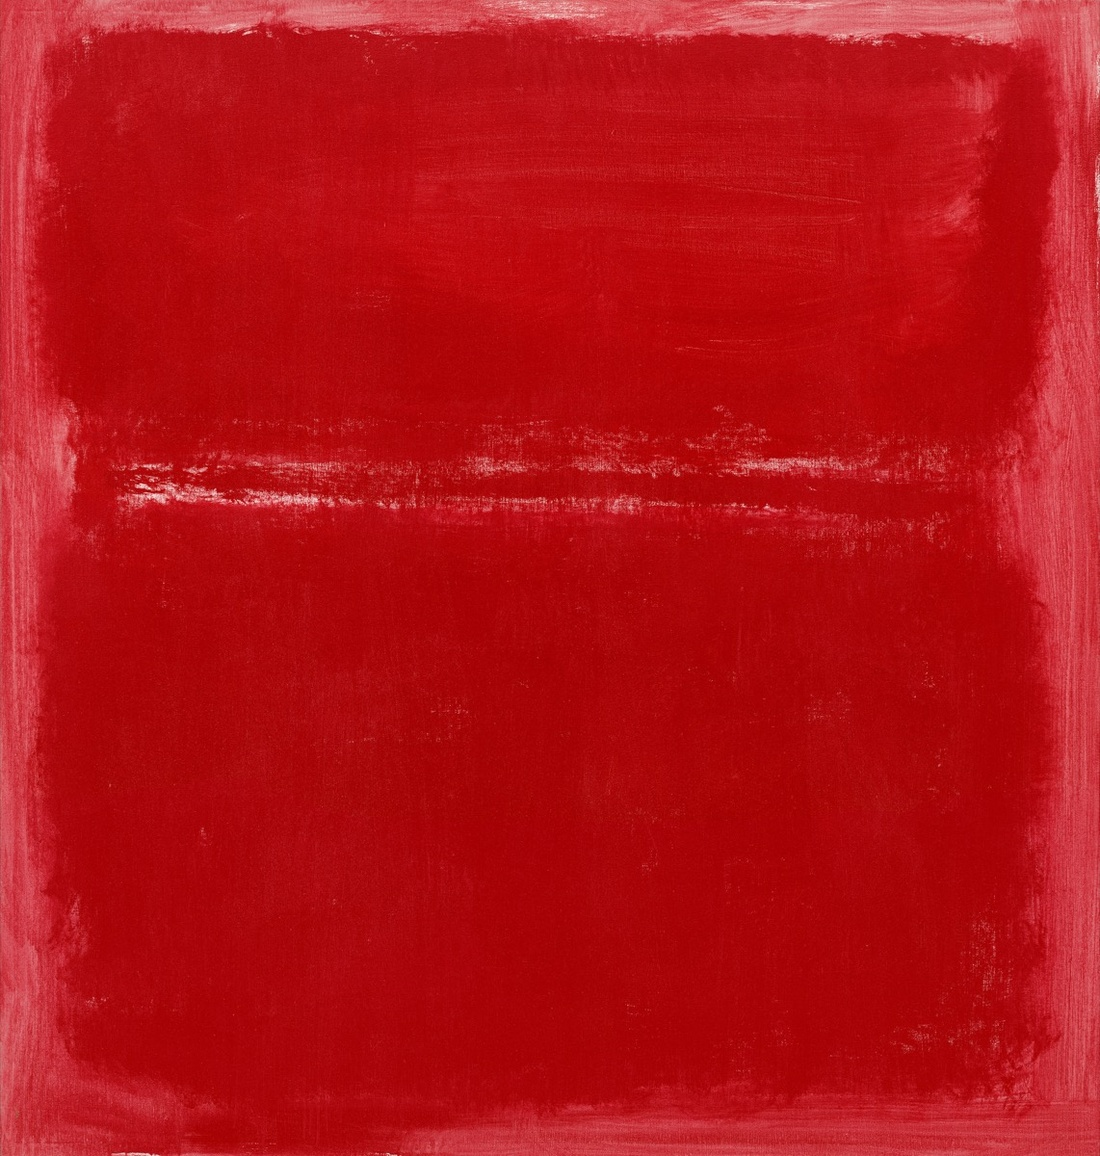 Mark Rothko, Untitled, 1970. Courtesy of the National Gallery of Art, Washington, DC.